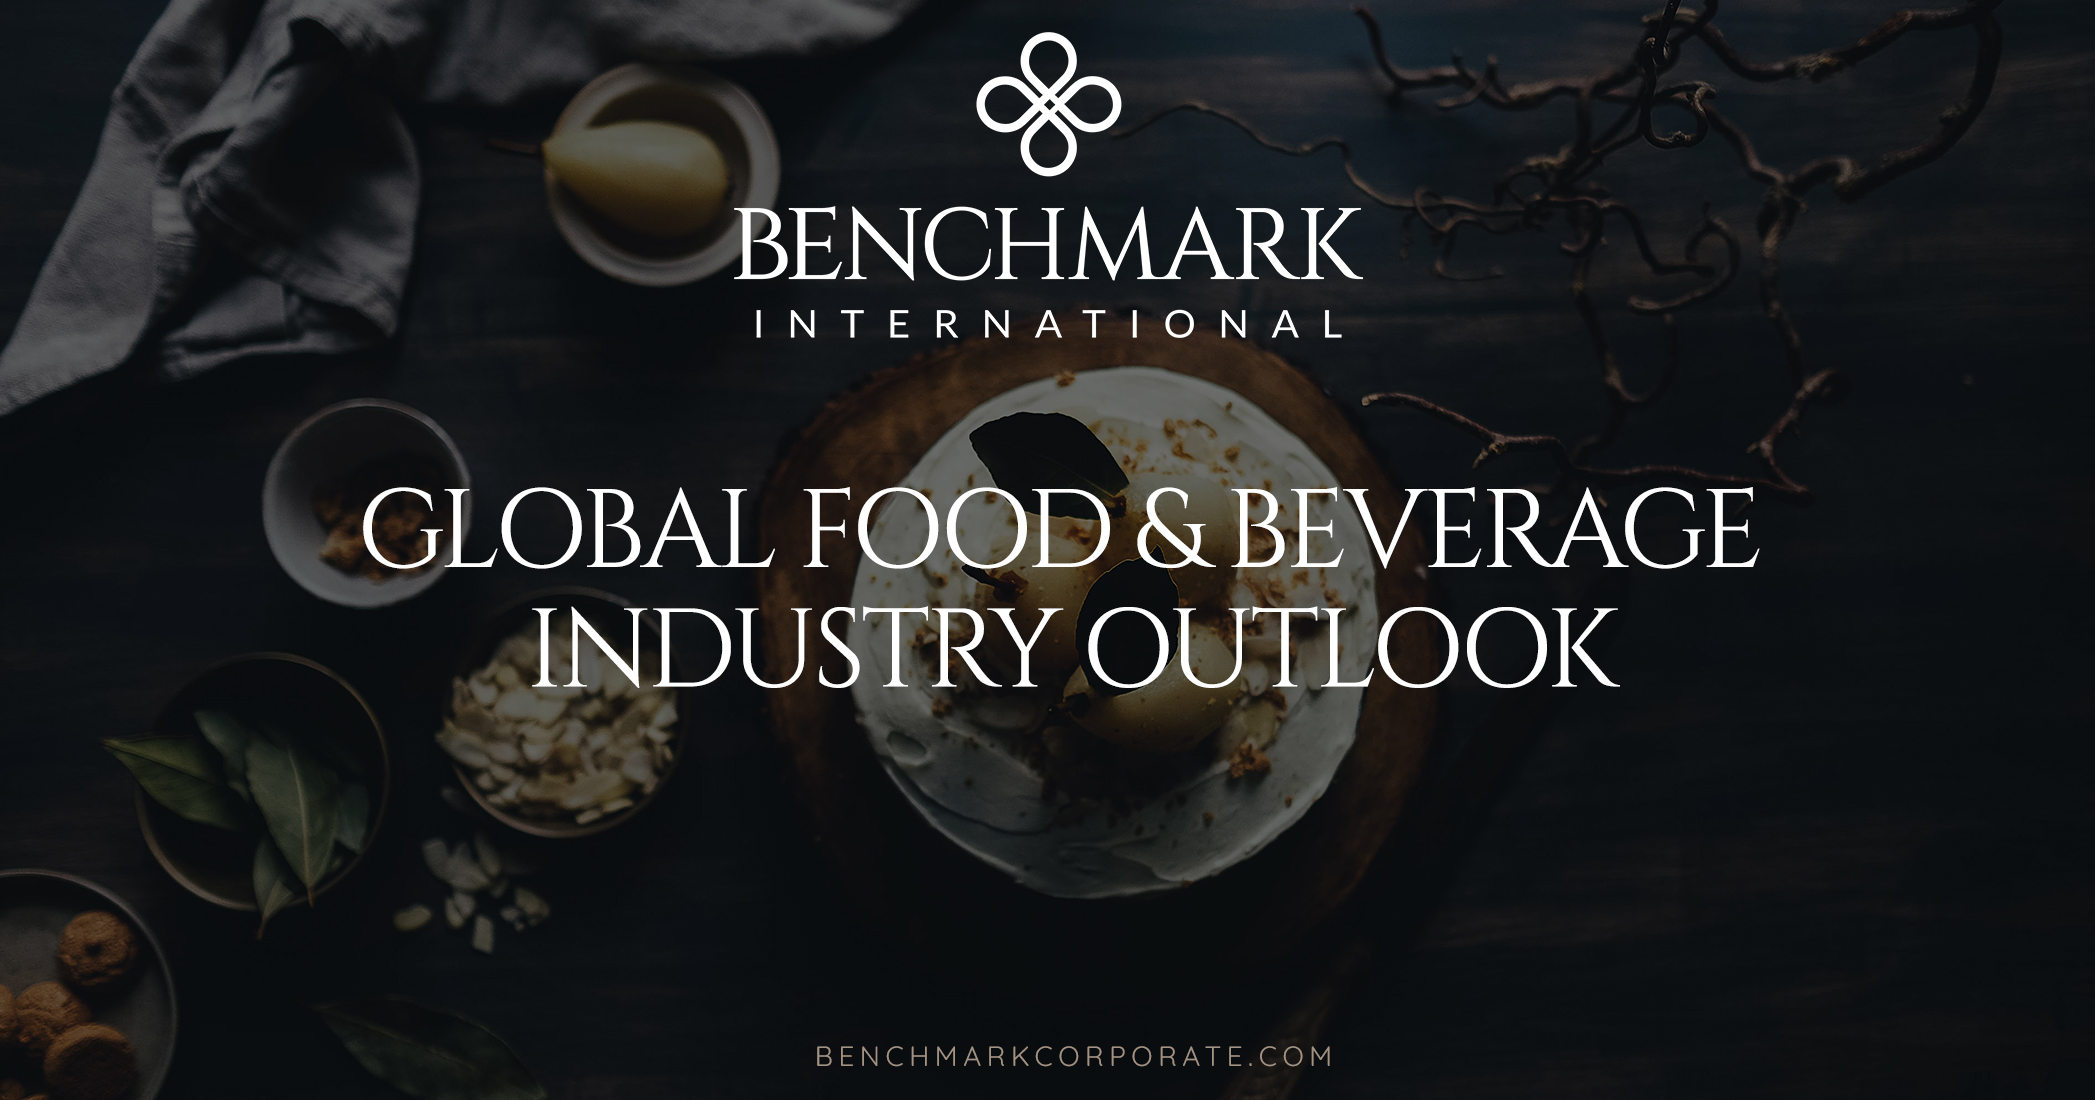 Global Food & Beverage Industry Outlook